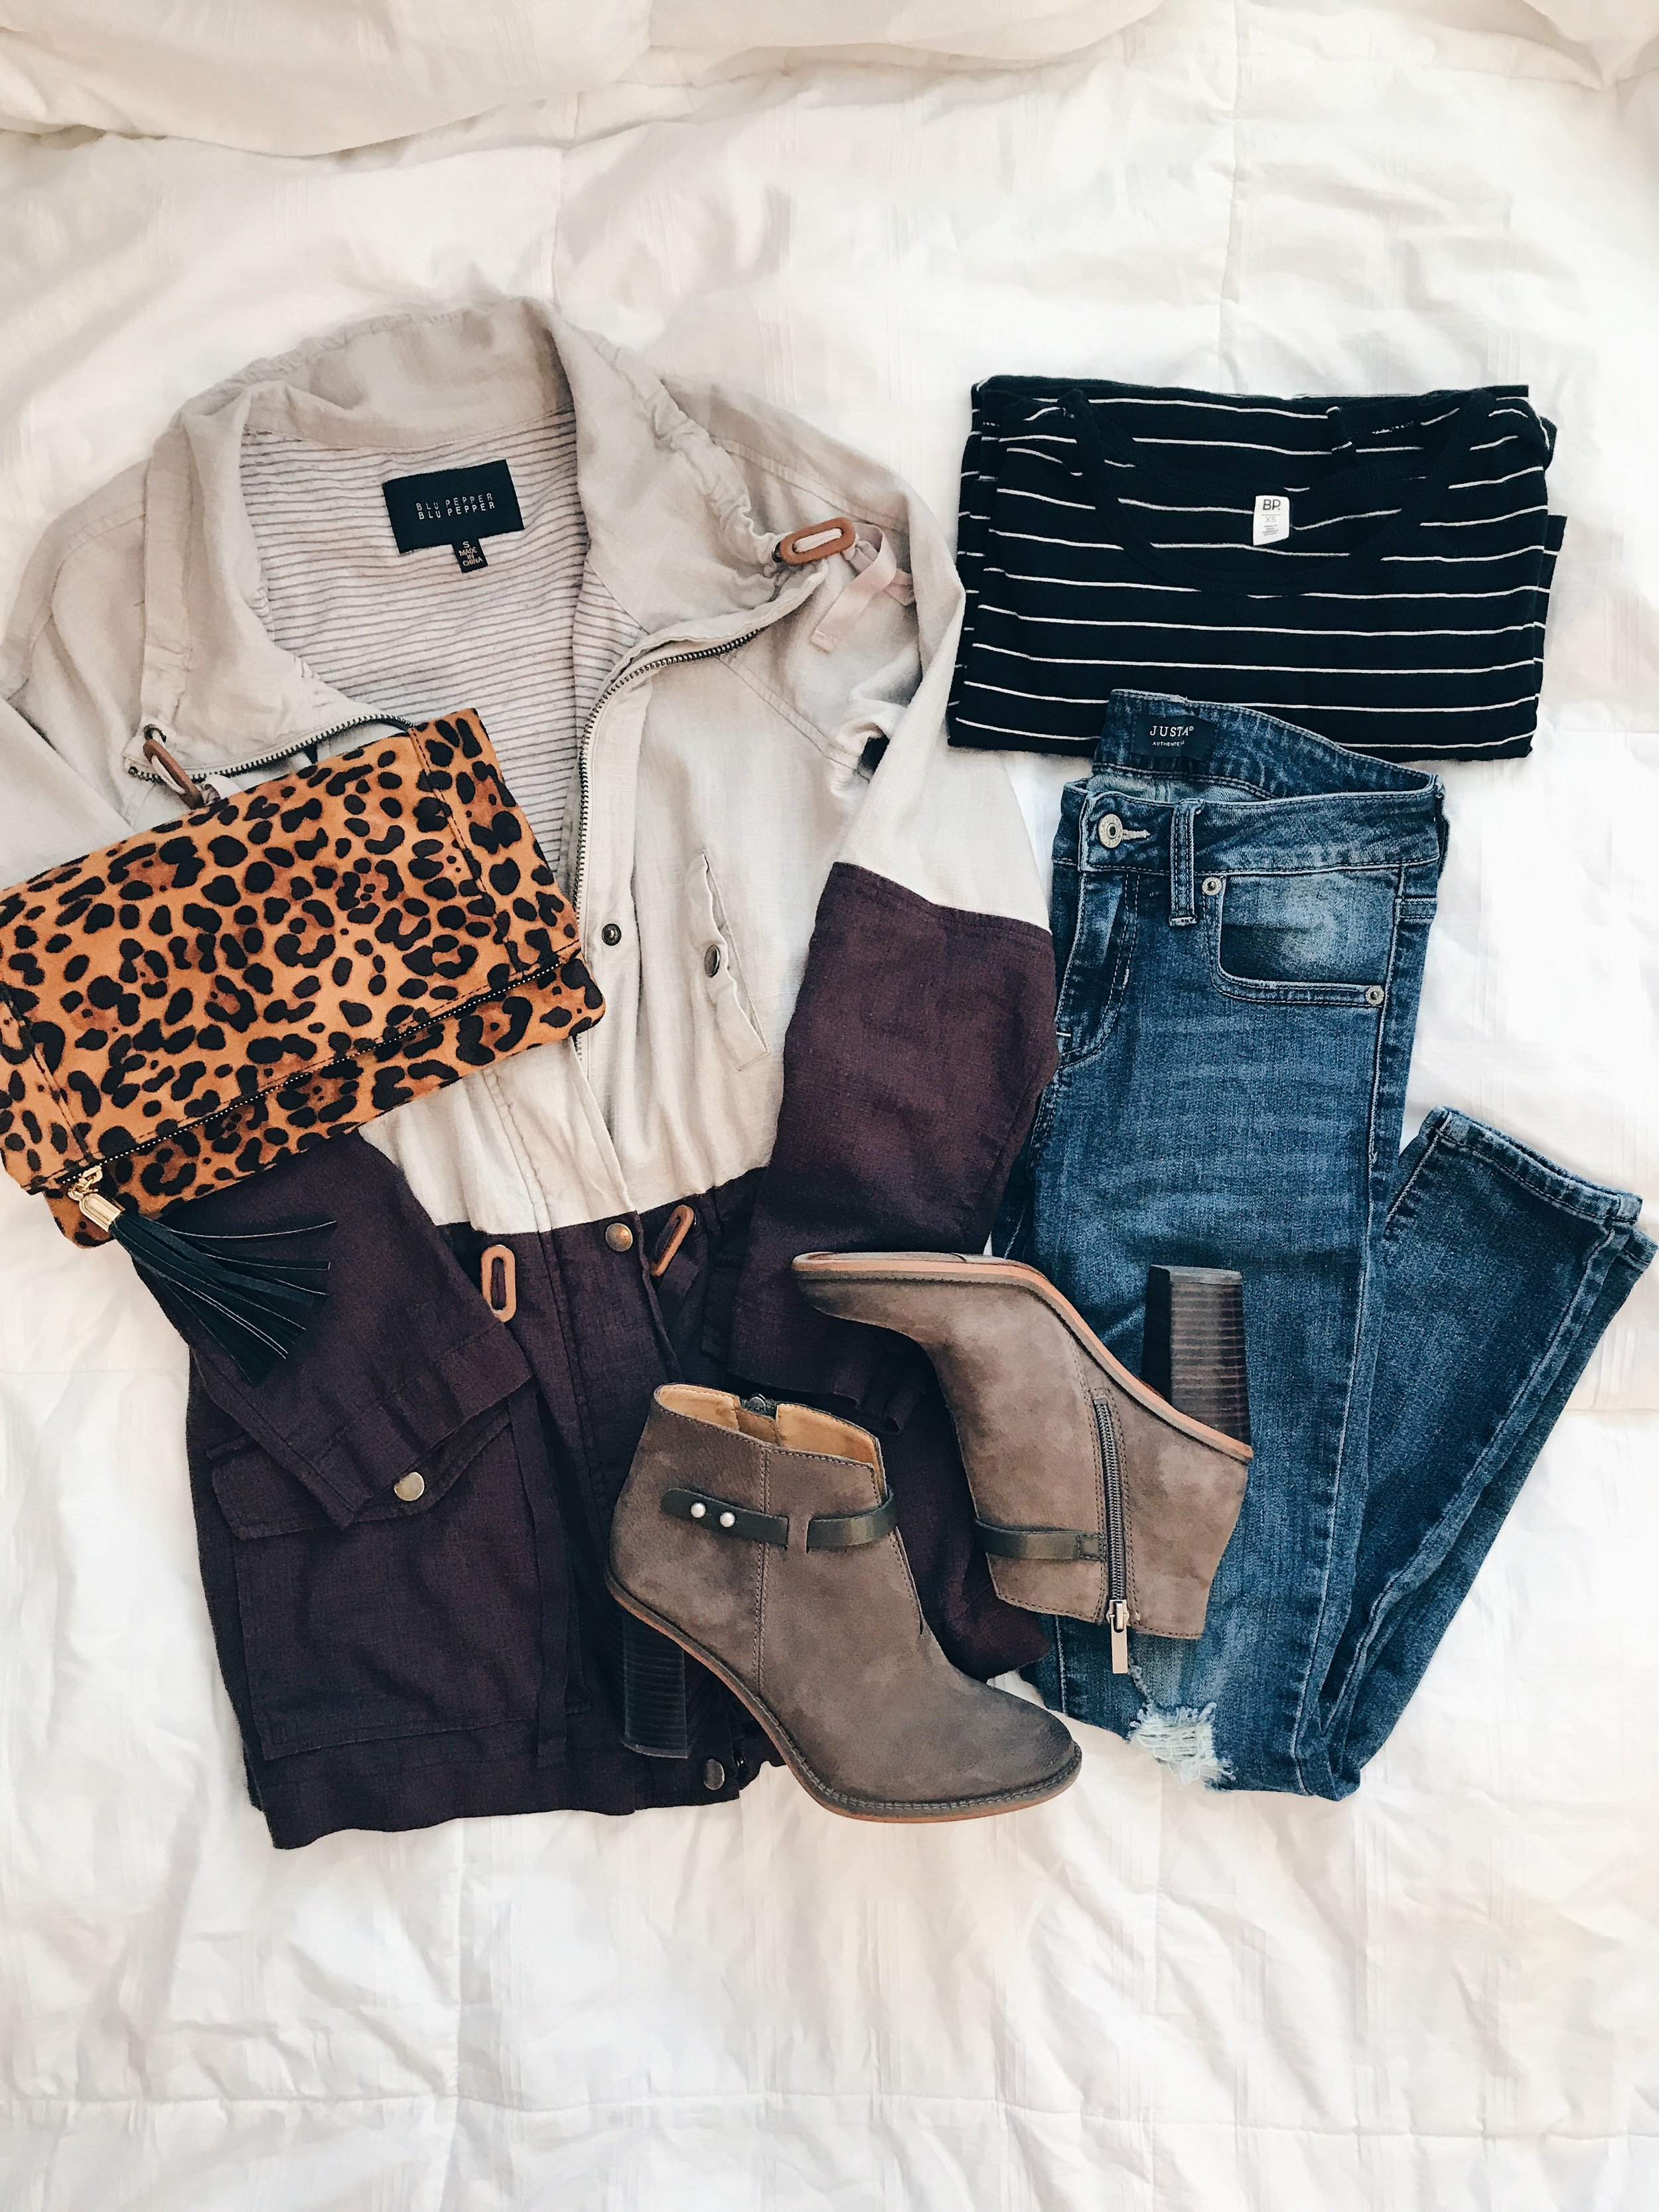 - Jacket || Clutch || Jeans || Striped Top || Booties*Use the code trendyinindy15 for 15% off your purchase at Sweet Olive.